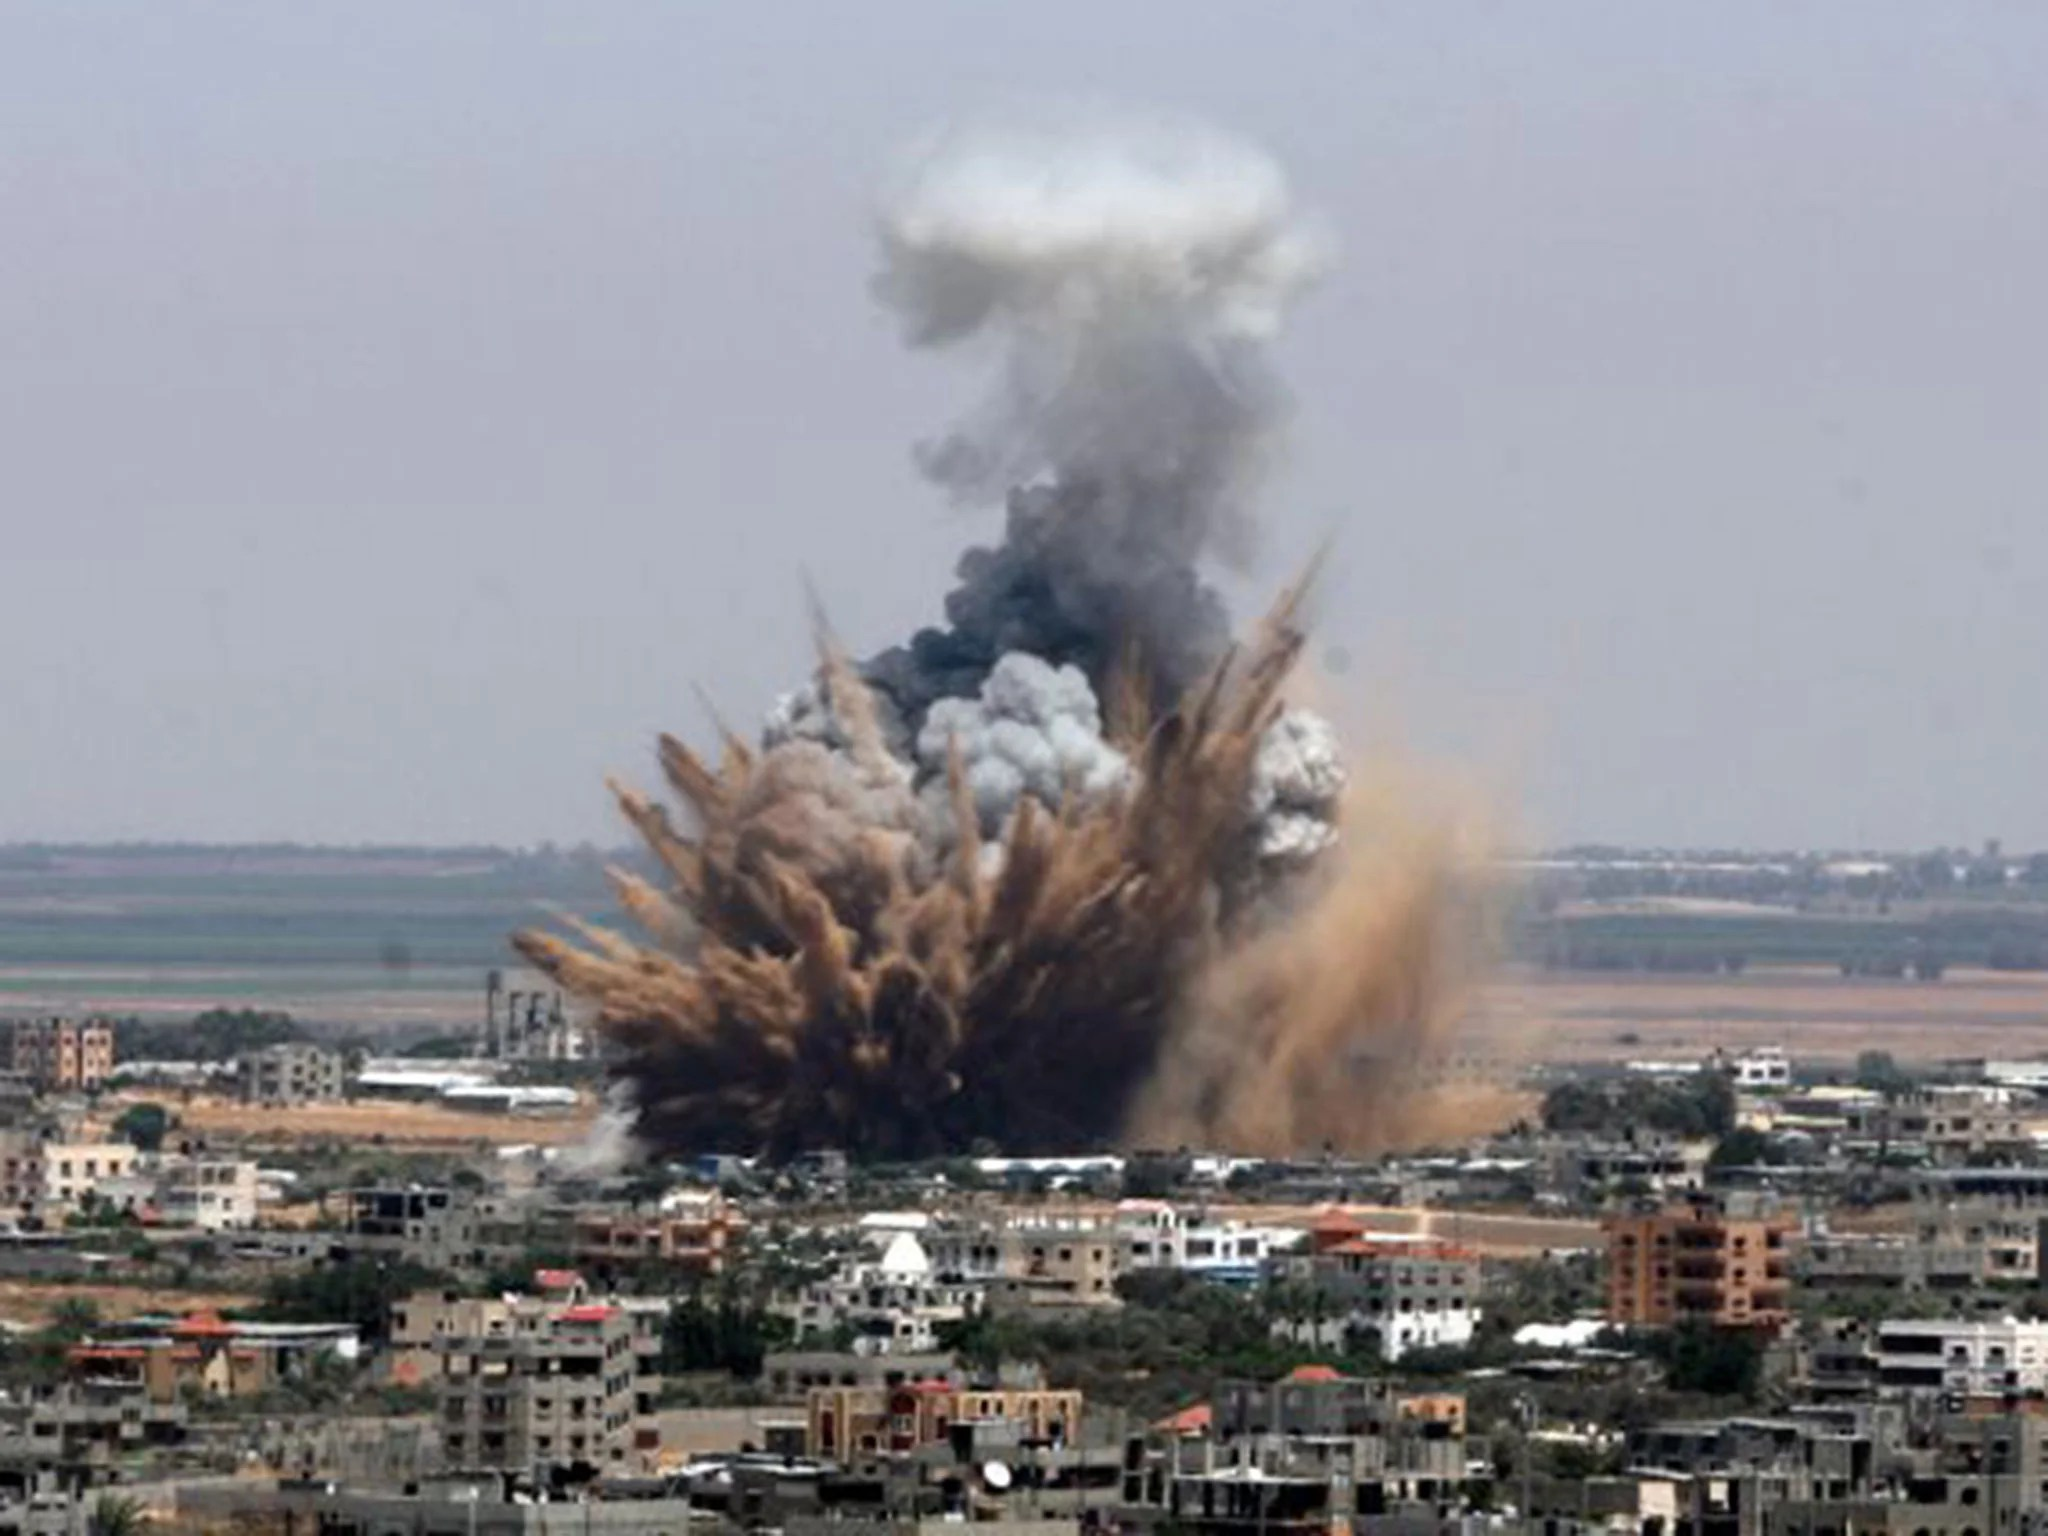 Israel-Gaza Conflict: Social Media Becomes The Latest